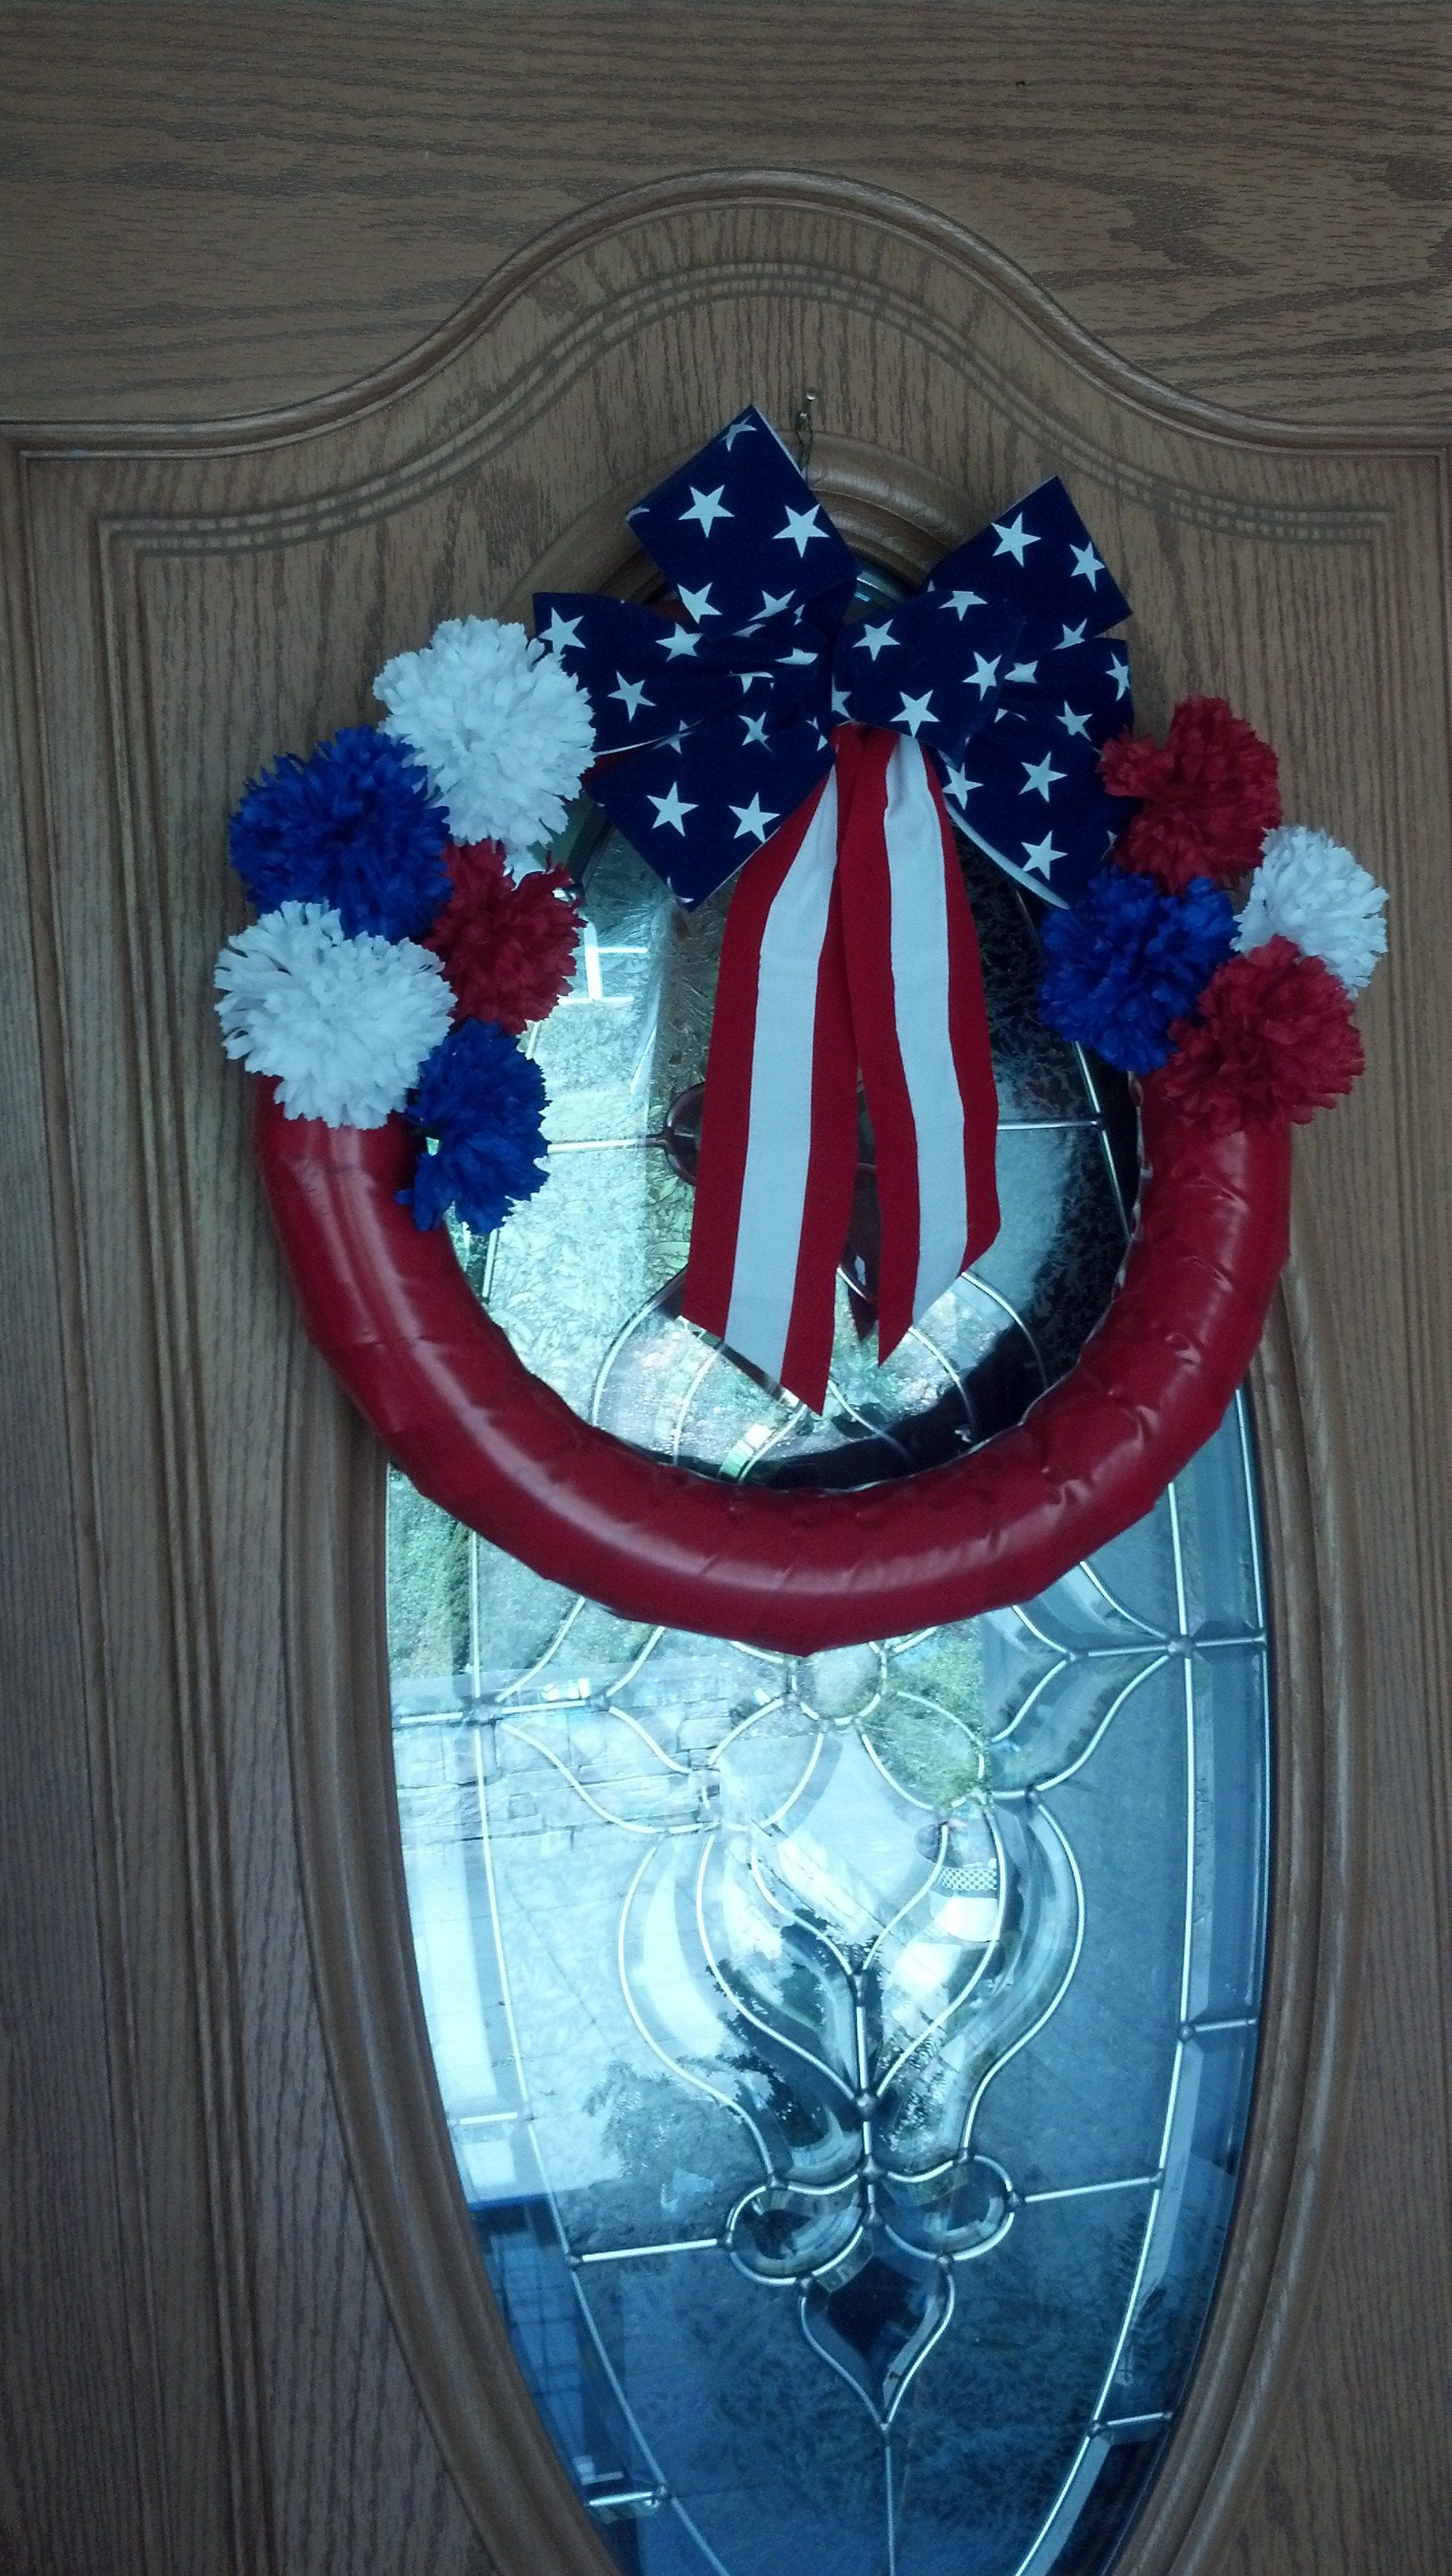 Red, white & blue wreath made from a Dollar Tree pool noodle wreath.  Entire project cost less than $5 (Michaels for the flowers and bow) and took less than 30 minutes to complete. #poolnoodlewreath Red, white & blue wreath made from a Dollar Tree pool noodle wreath.  Entire project cost less than $5 (Michaels for the flowers and bow) and took less than 30 minutes to complete. #poolnoodlewreath